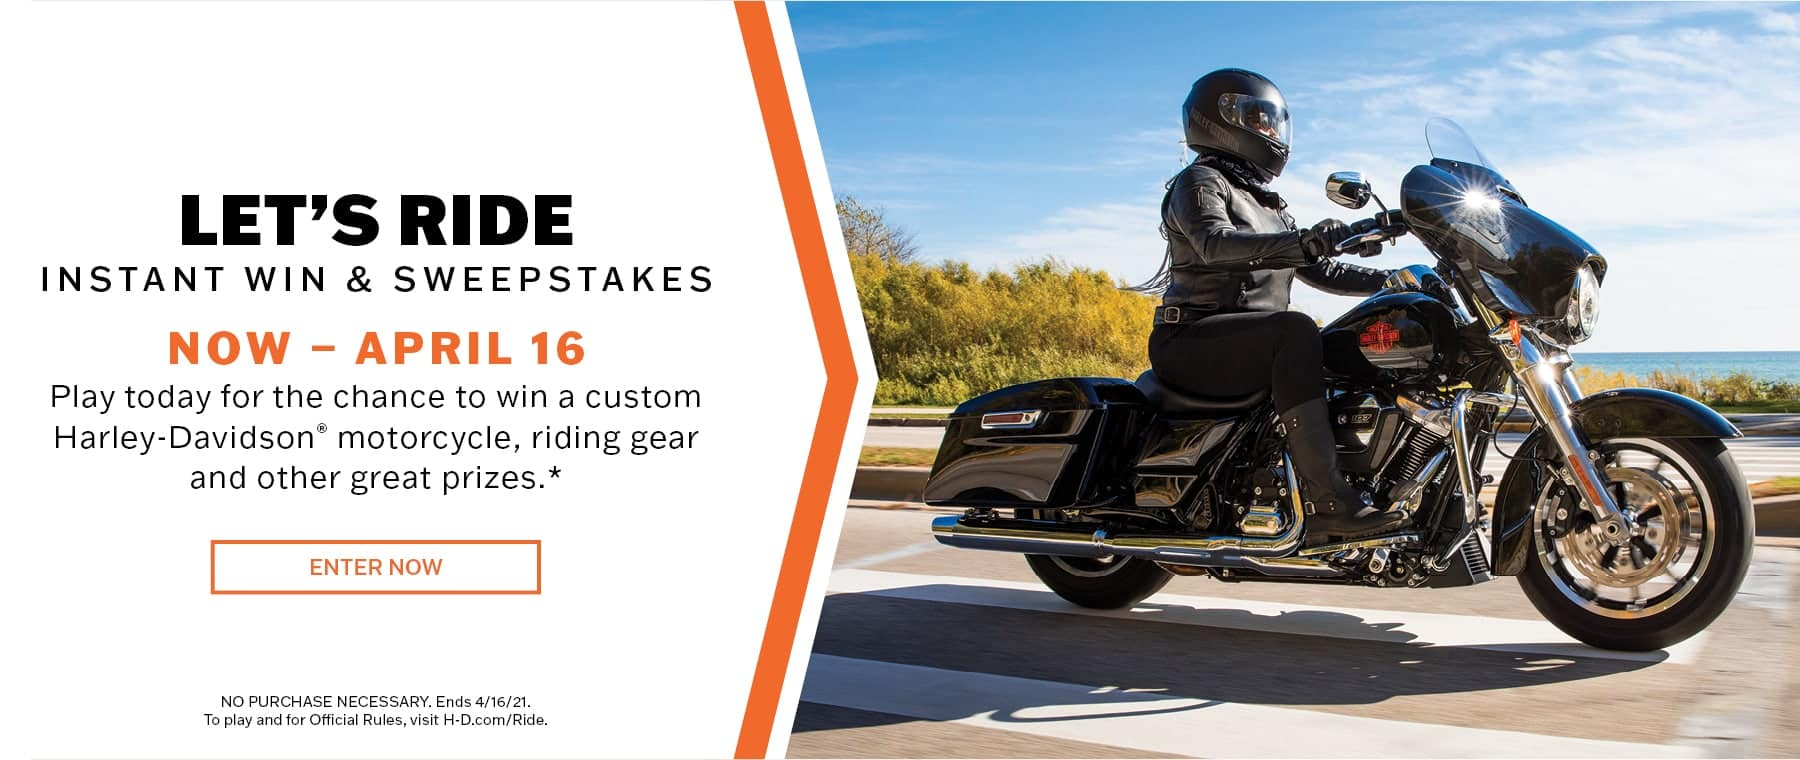 Harley Davidson Let's Ride Sweepstakes